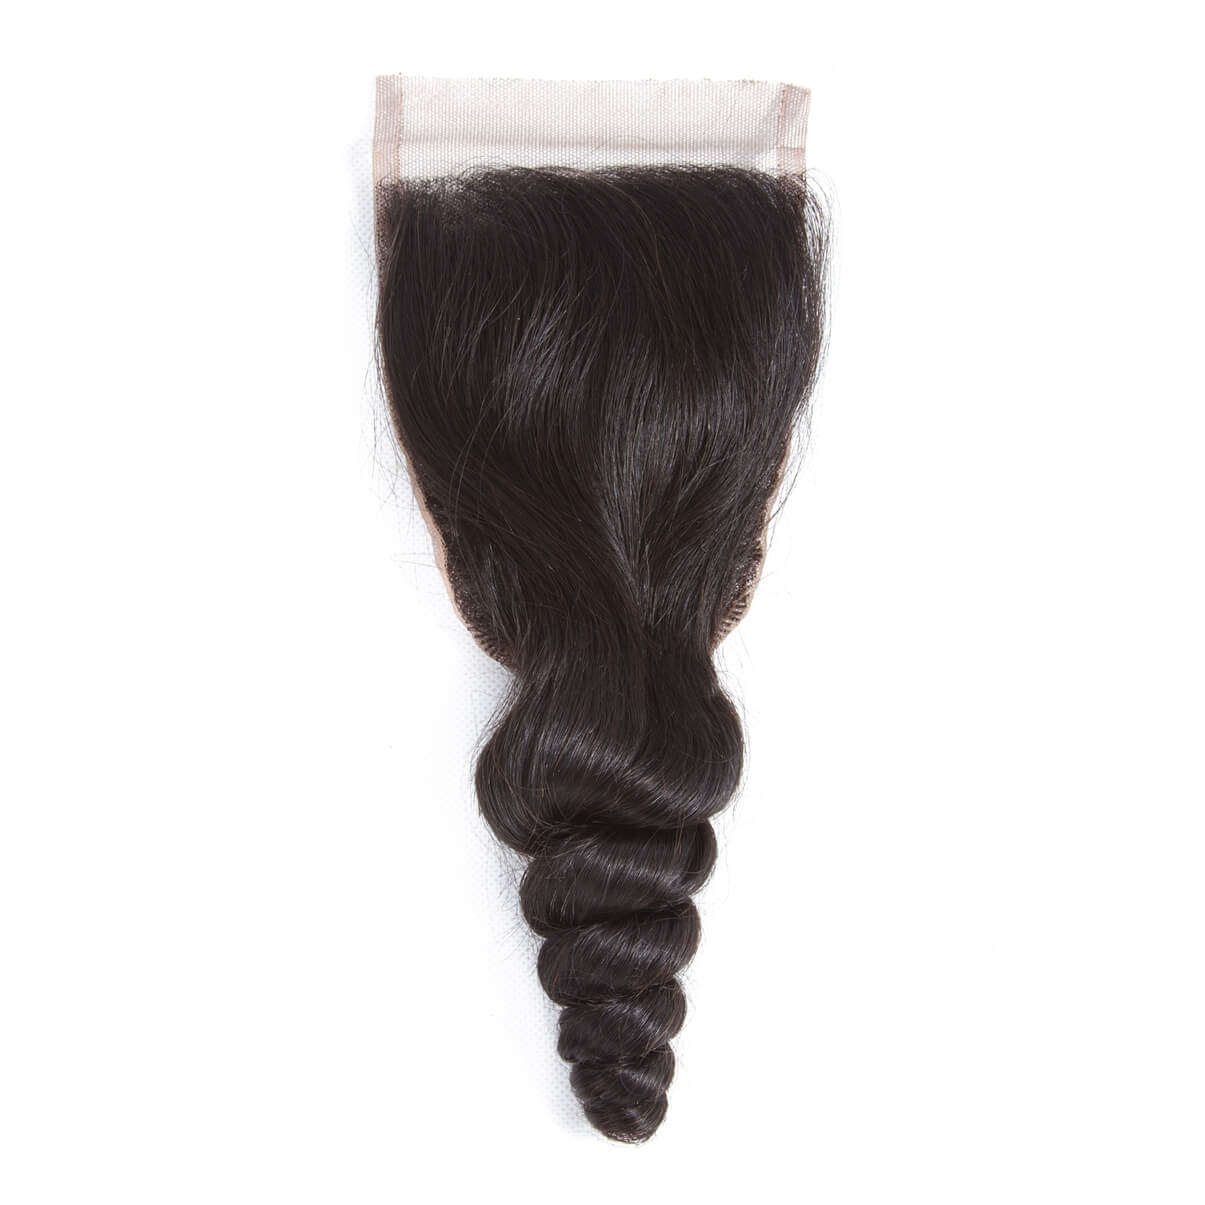 Lakihair 8A Brazilian Virgin Human Hair 4 Bundles With Lace Closure 4x4